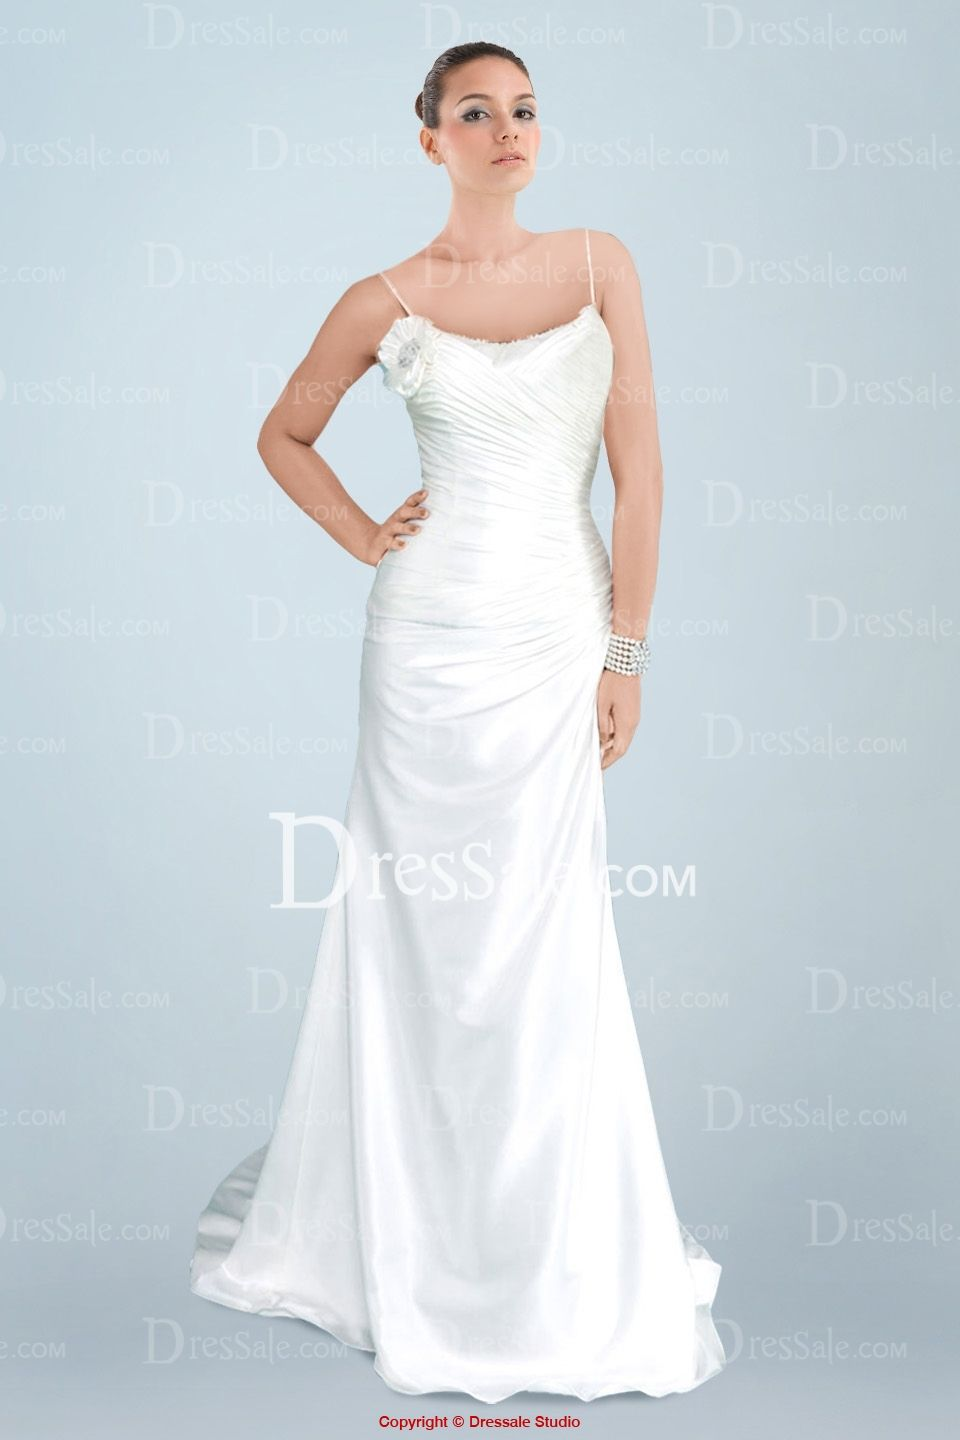 Bodice wedding dress  Engrossing Oneshoulder Spaghetti Strap Aline Wedding Dress with